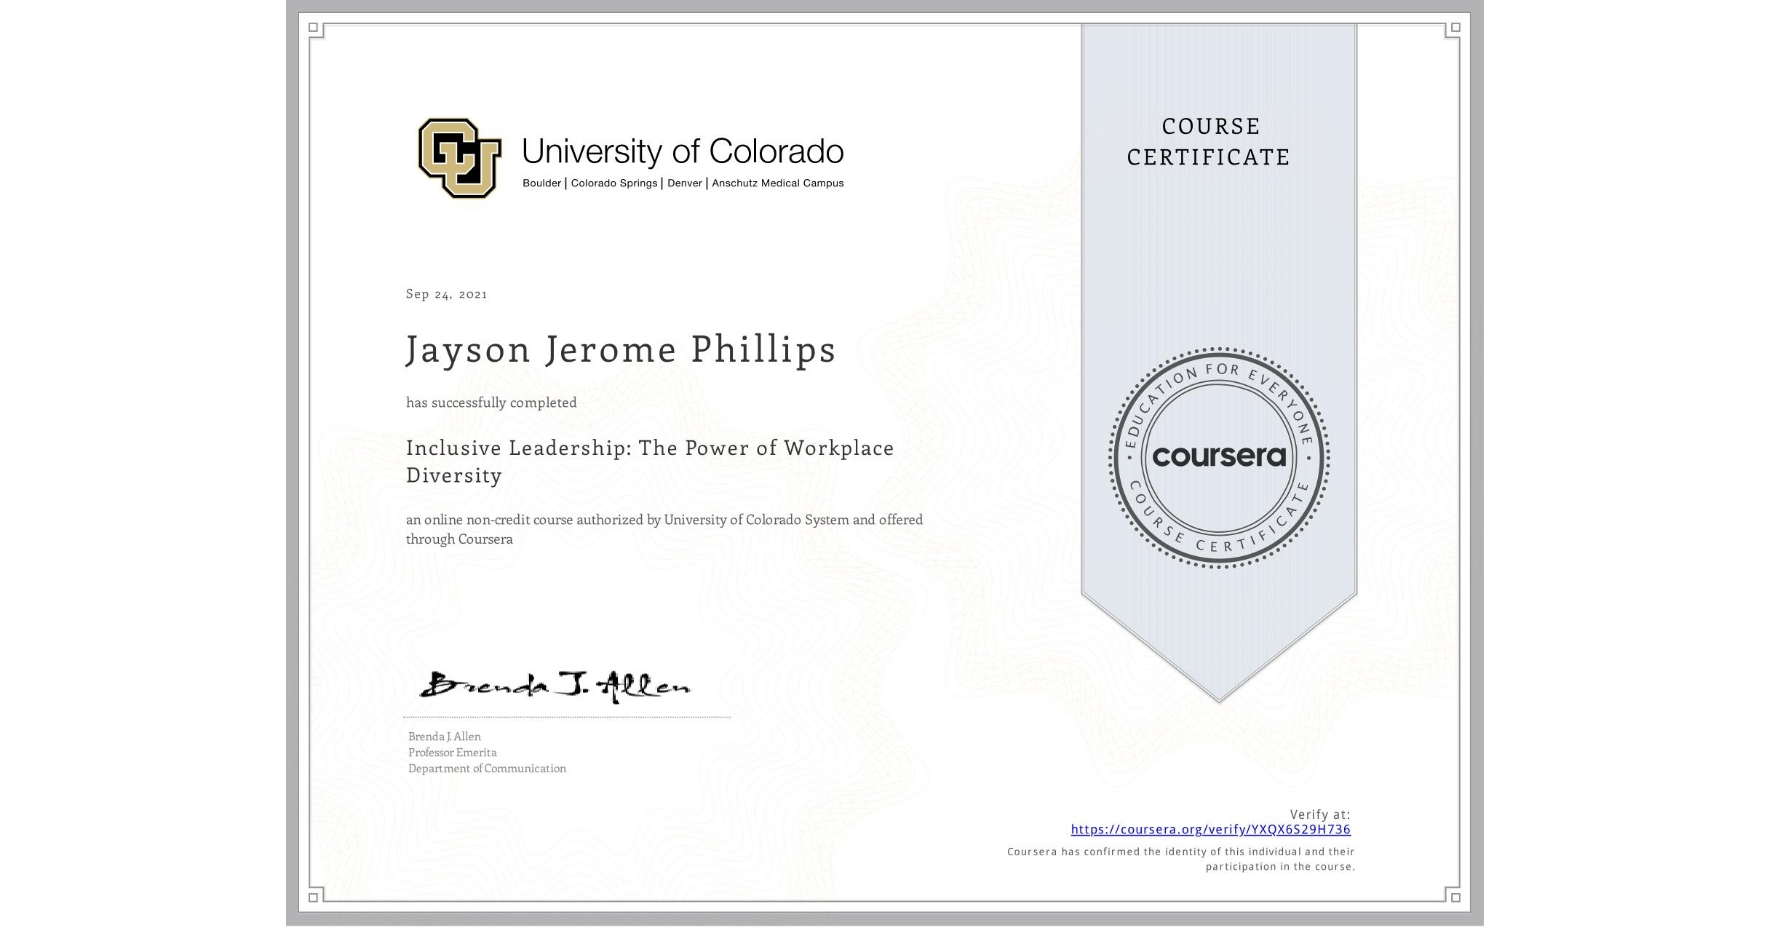 View certificate for Jayson Jerome Phillips, Inclusive Leadership: The Power of Workplace Diversity, an online non-credit course authorized by University of Colorado System and offered through Coursera